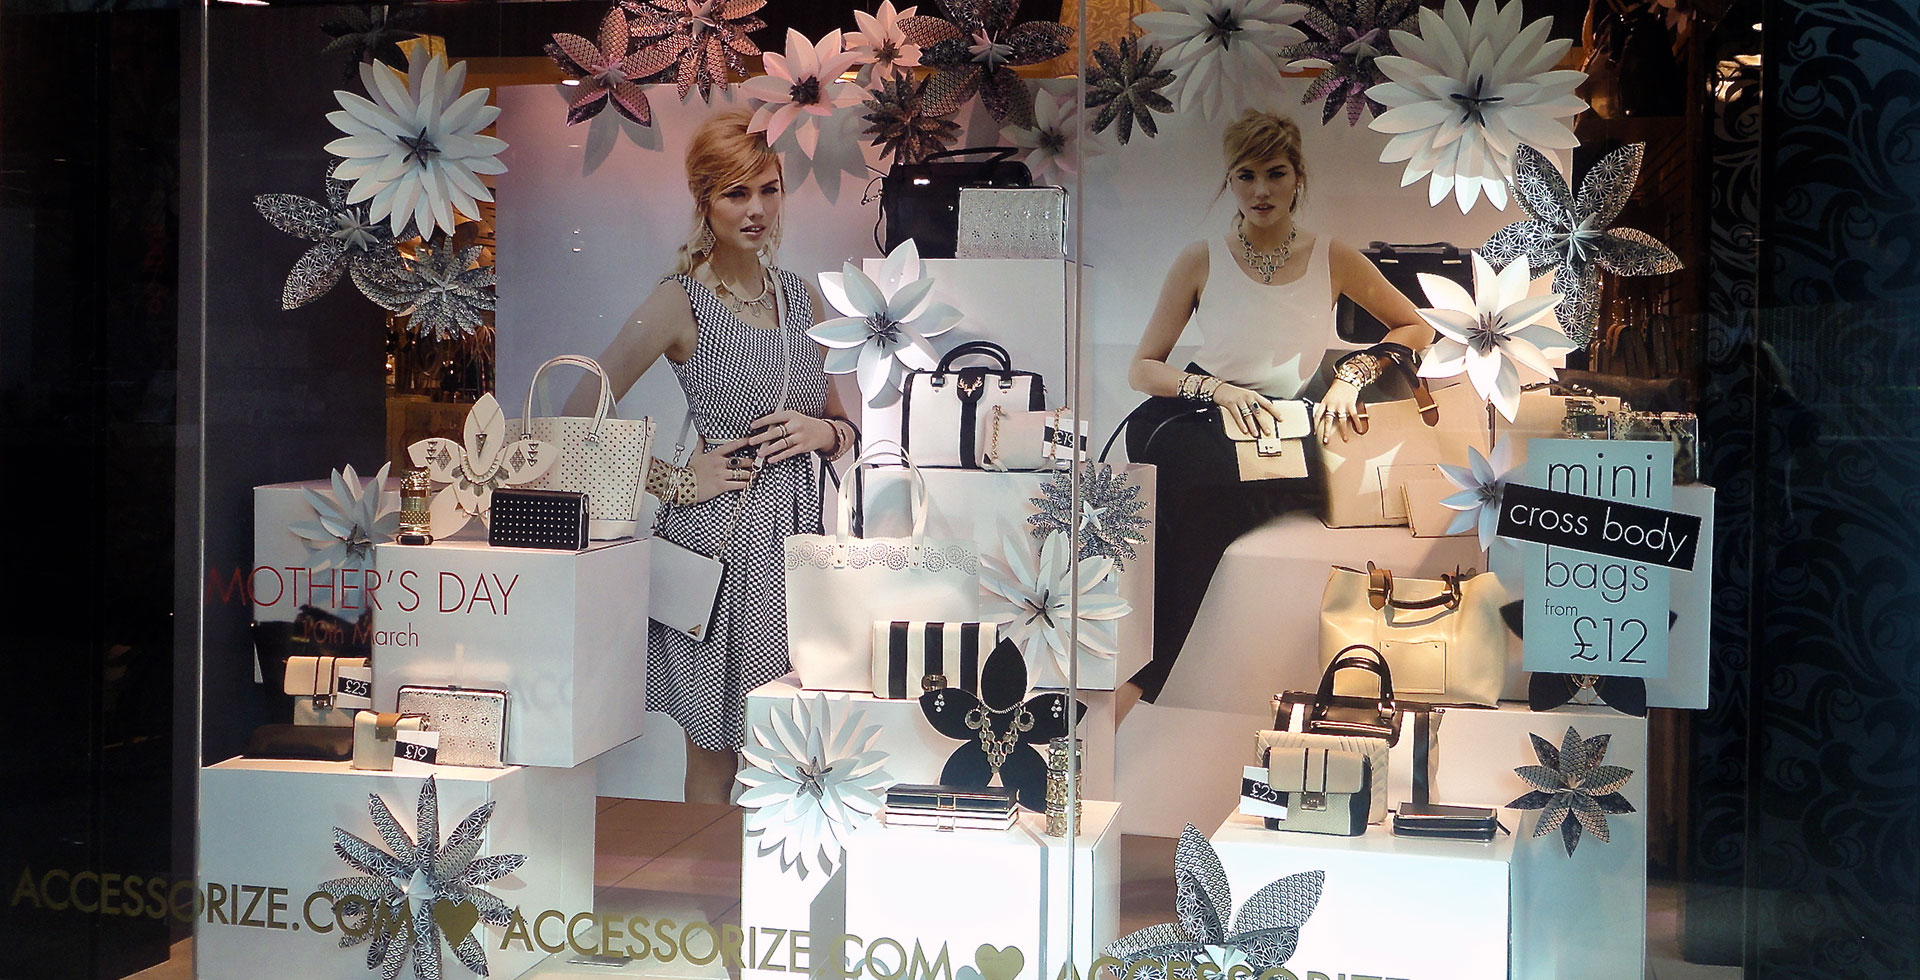 Accessorize Kate Upton window